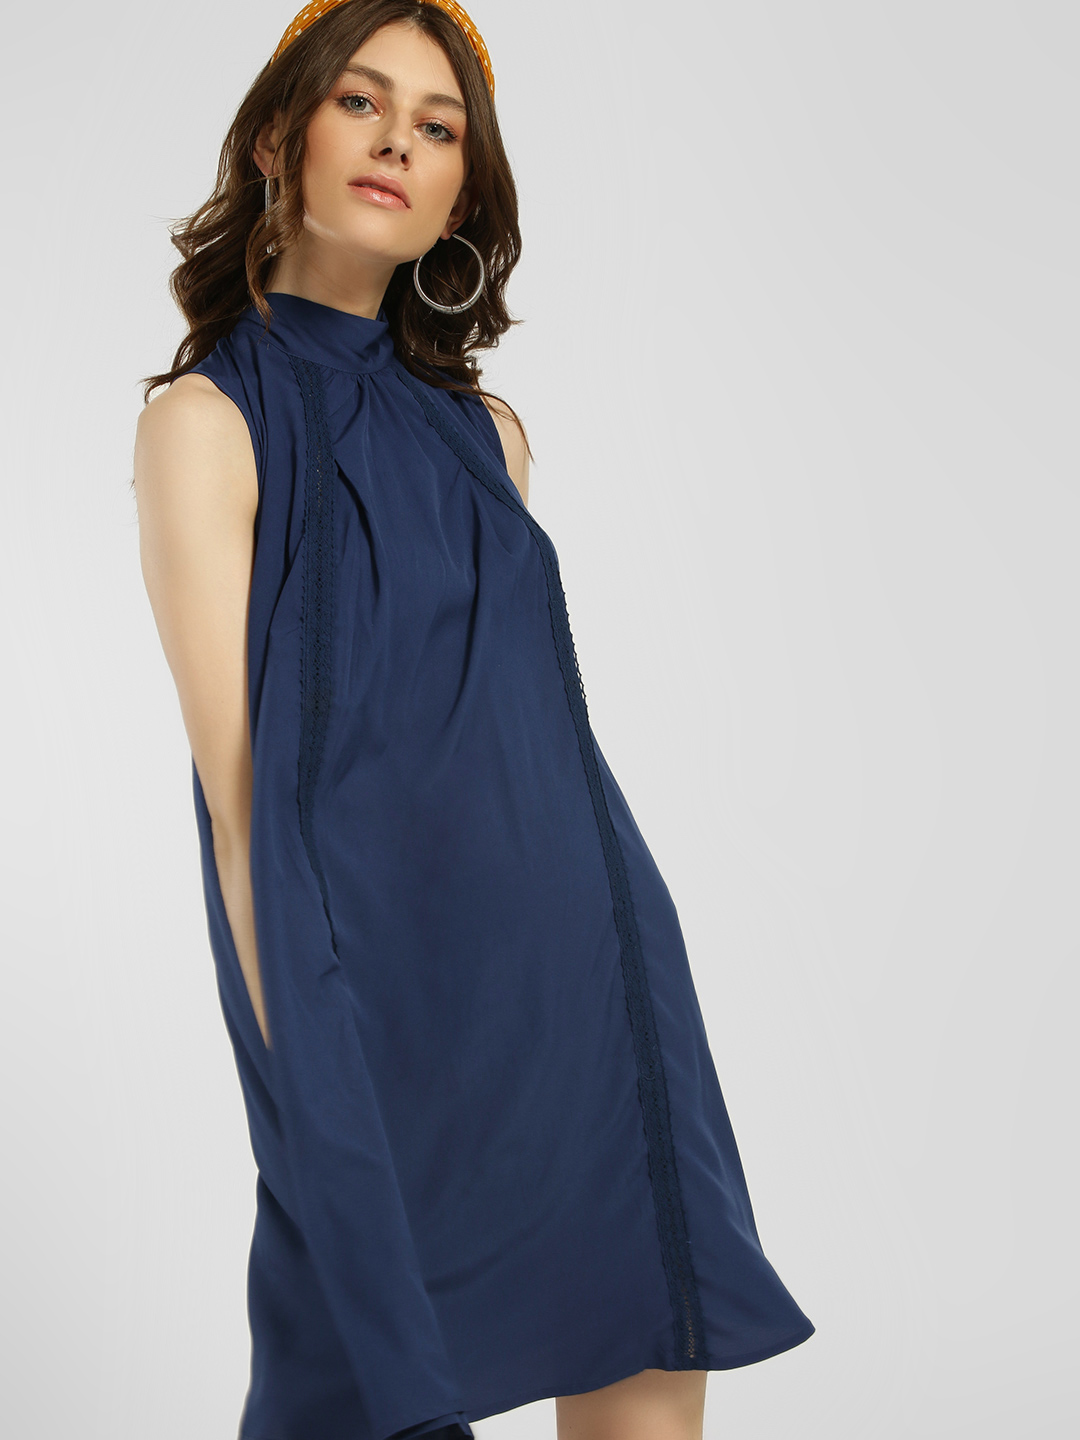 Blue Sequin Navy Lace Tie-Up Neck Swing Dress 1